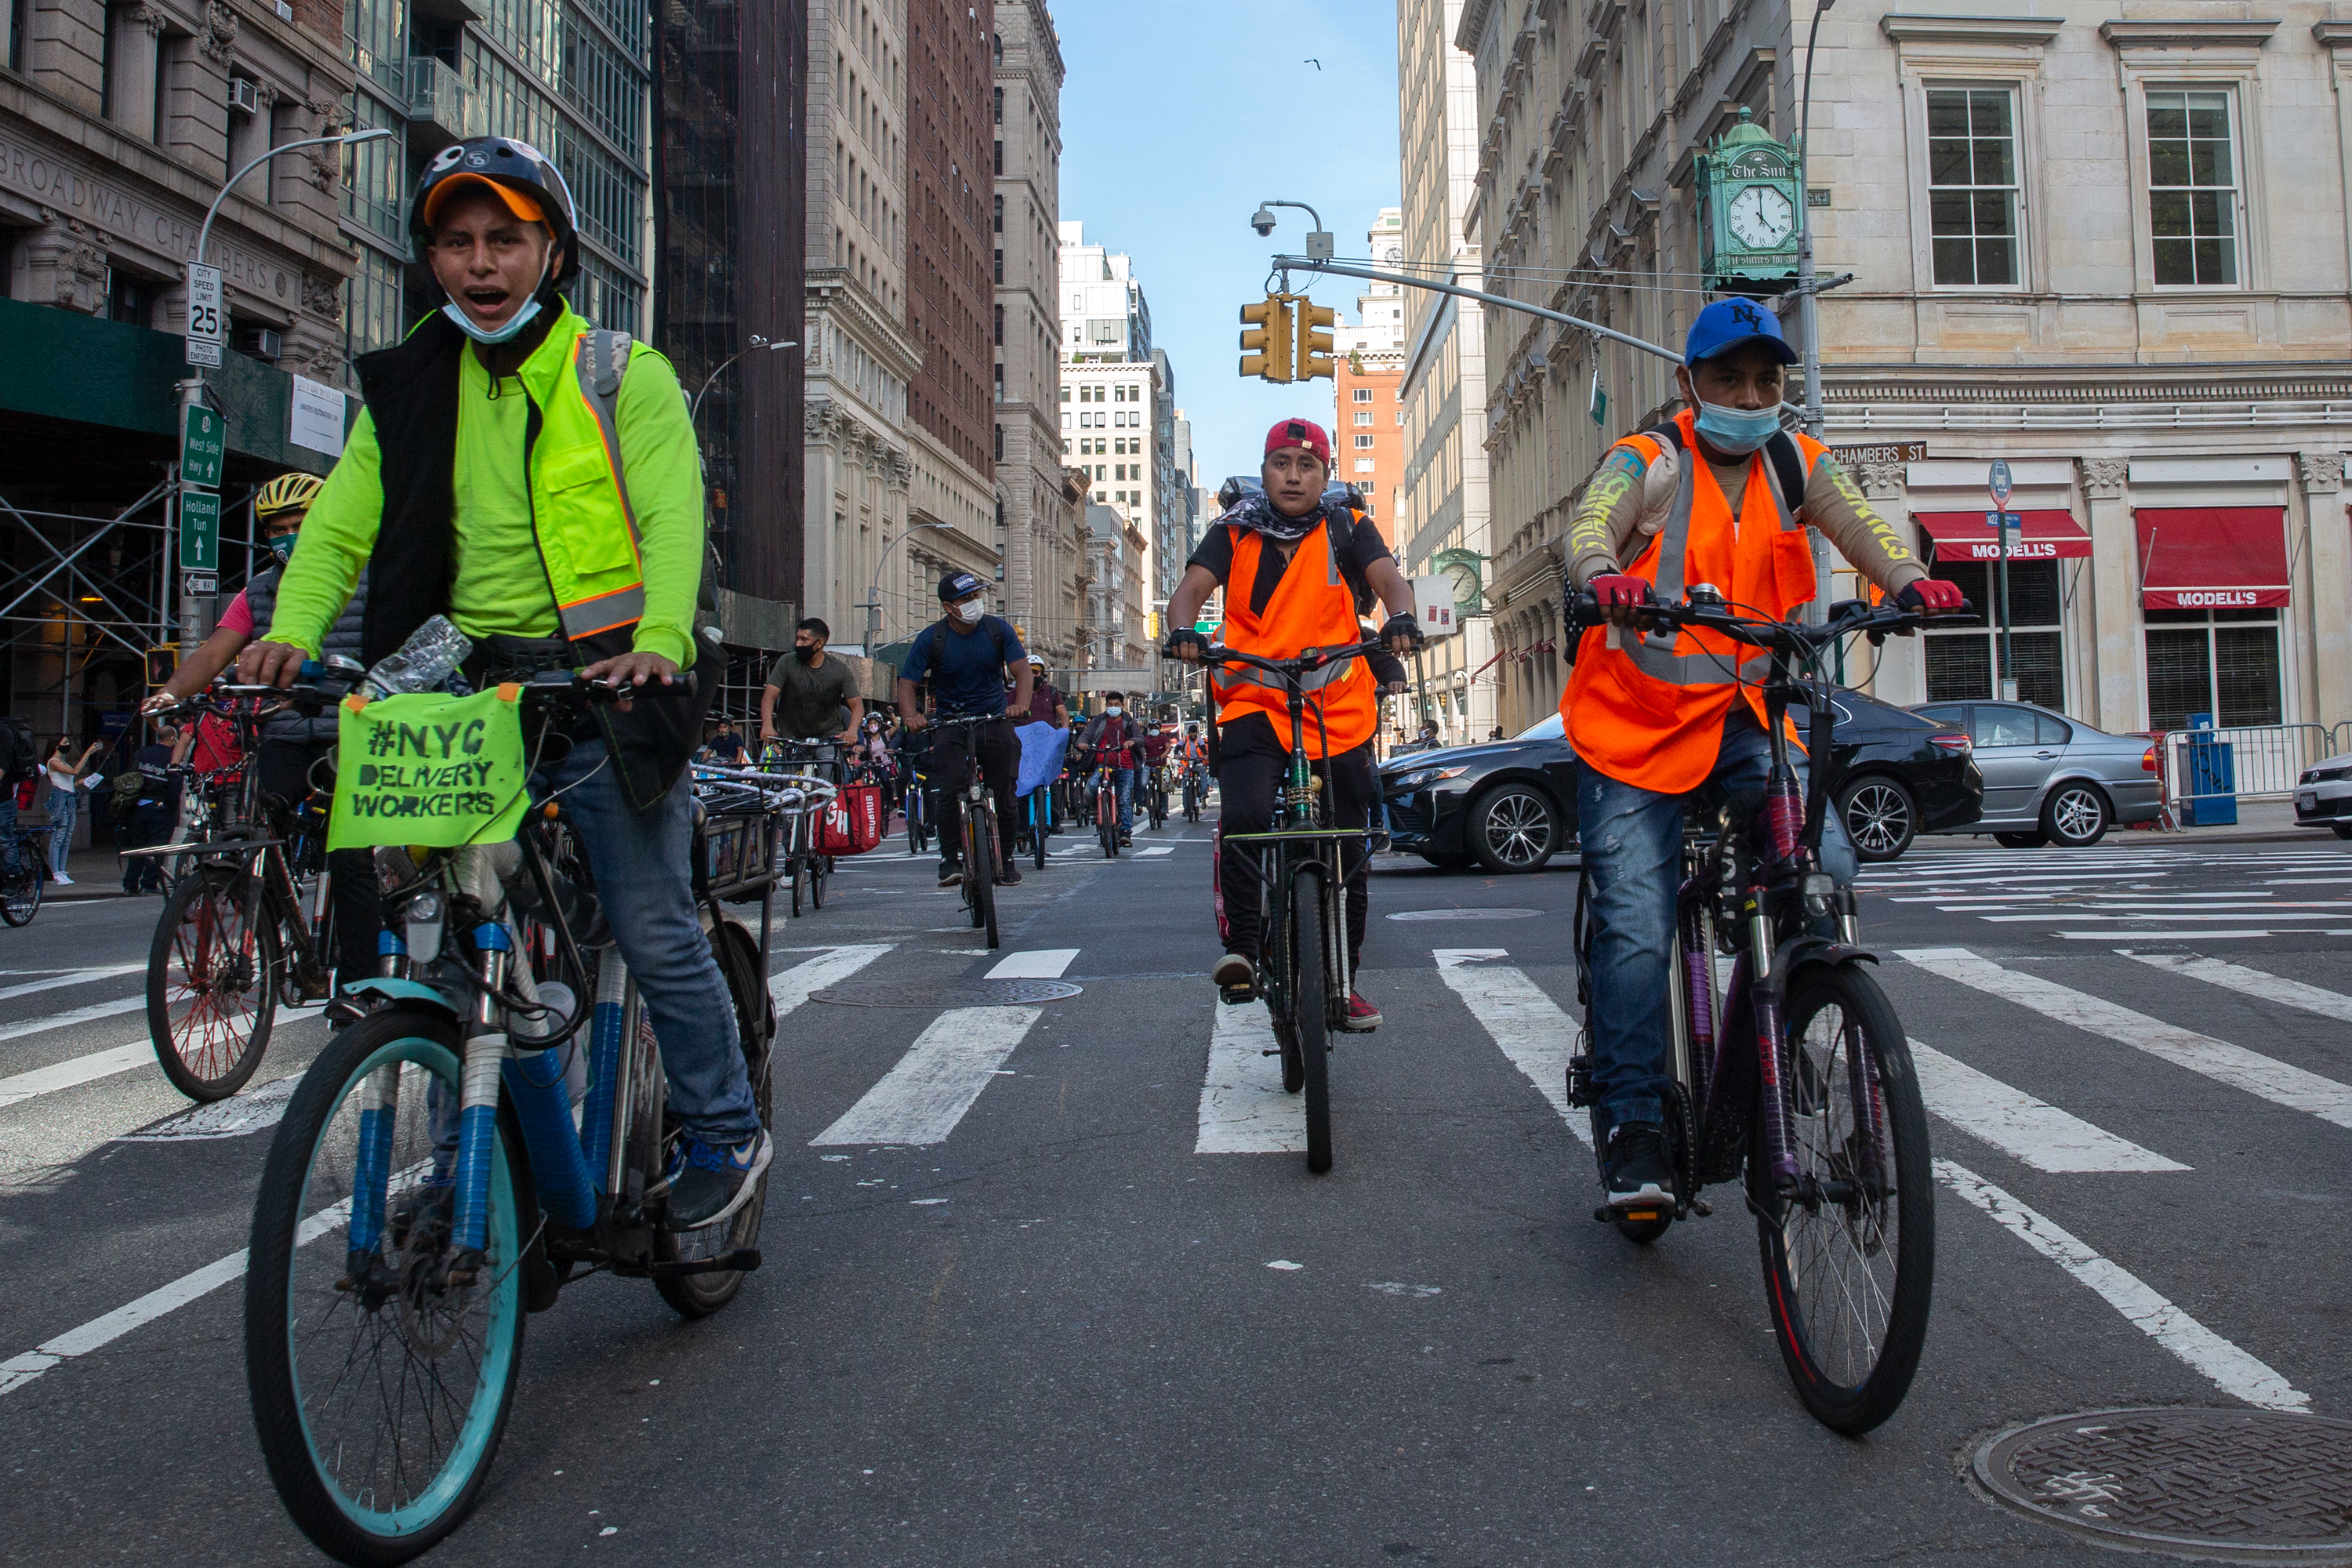 Delivery cyclists ride down Broadway in Manhattan to protest a lack of protection during the coronavirus pandemic, Oct. 15, 2020.